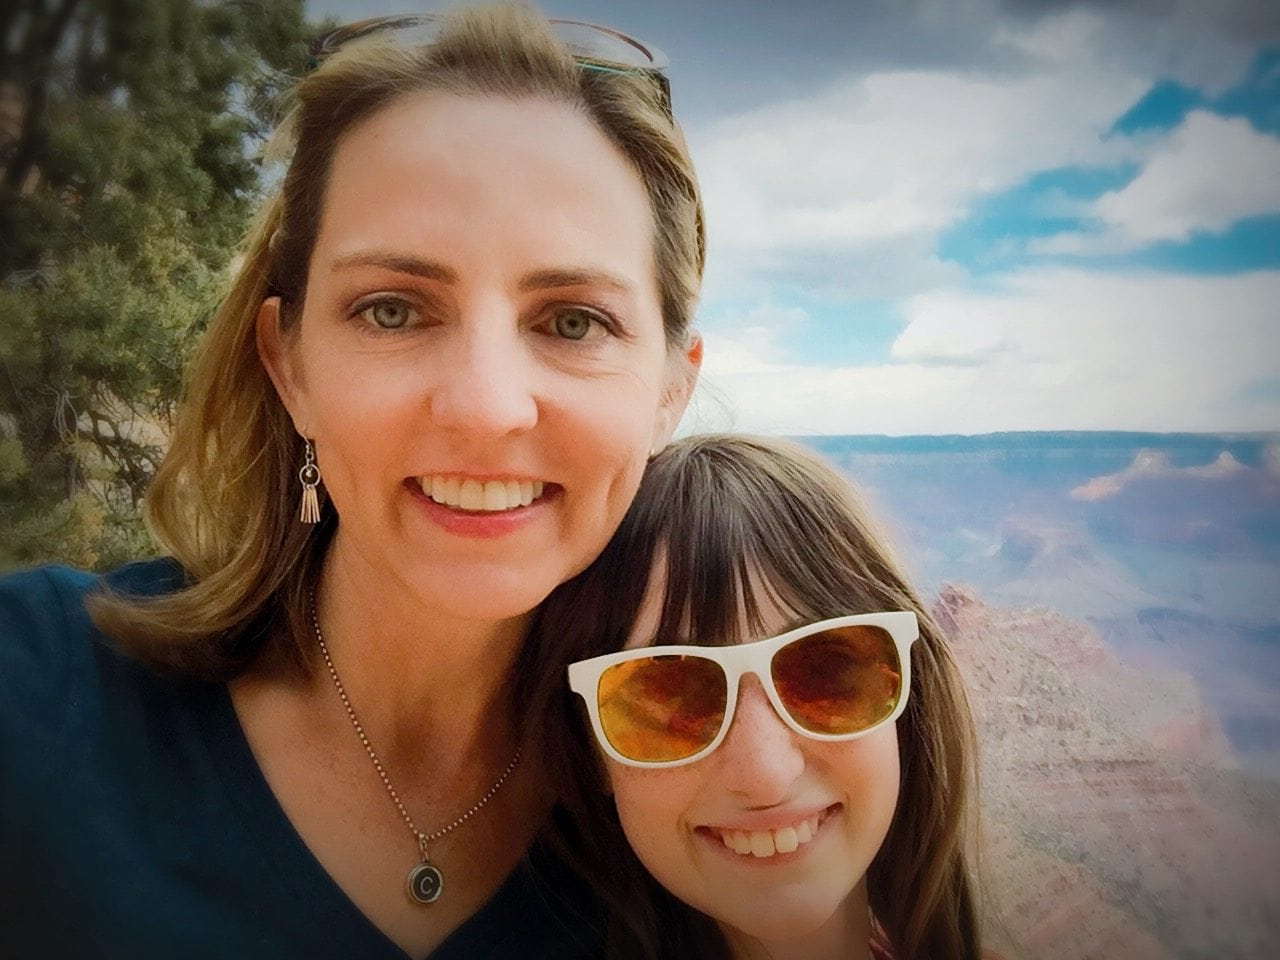 A Grand Canyon selfie during a brief hike with my daughter on the Bright Angel Trail